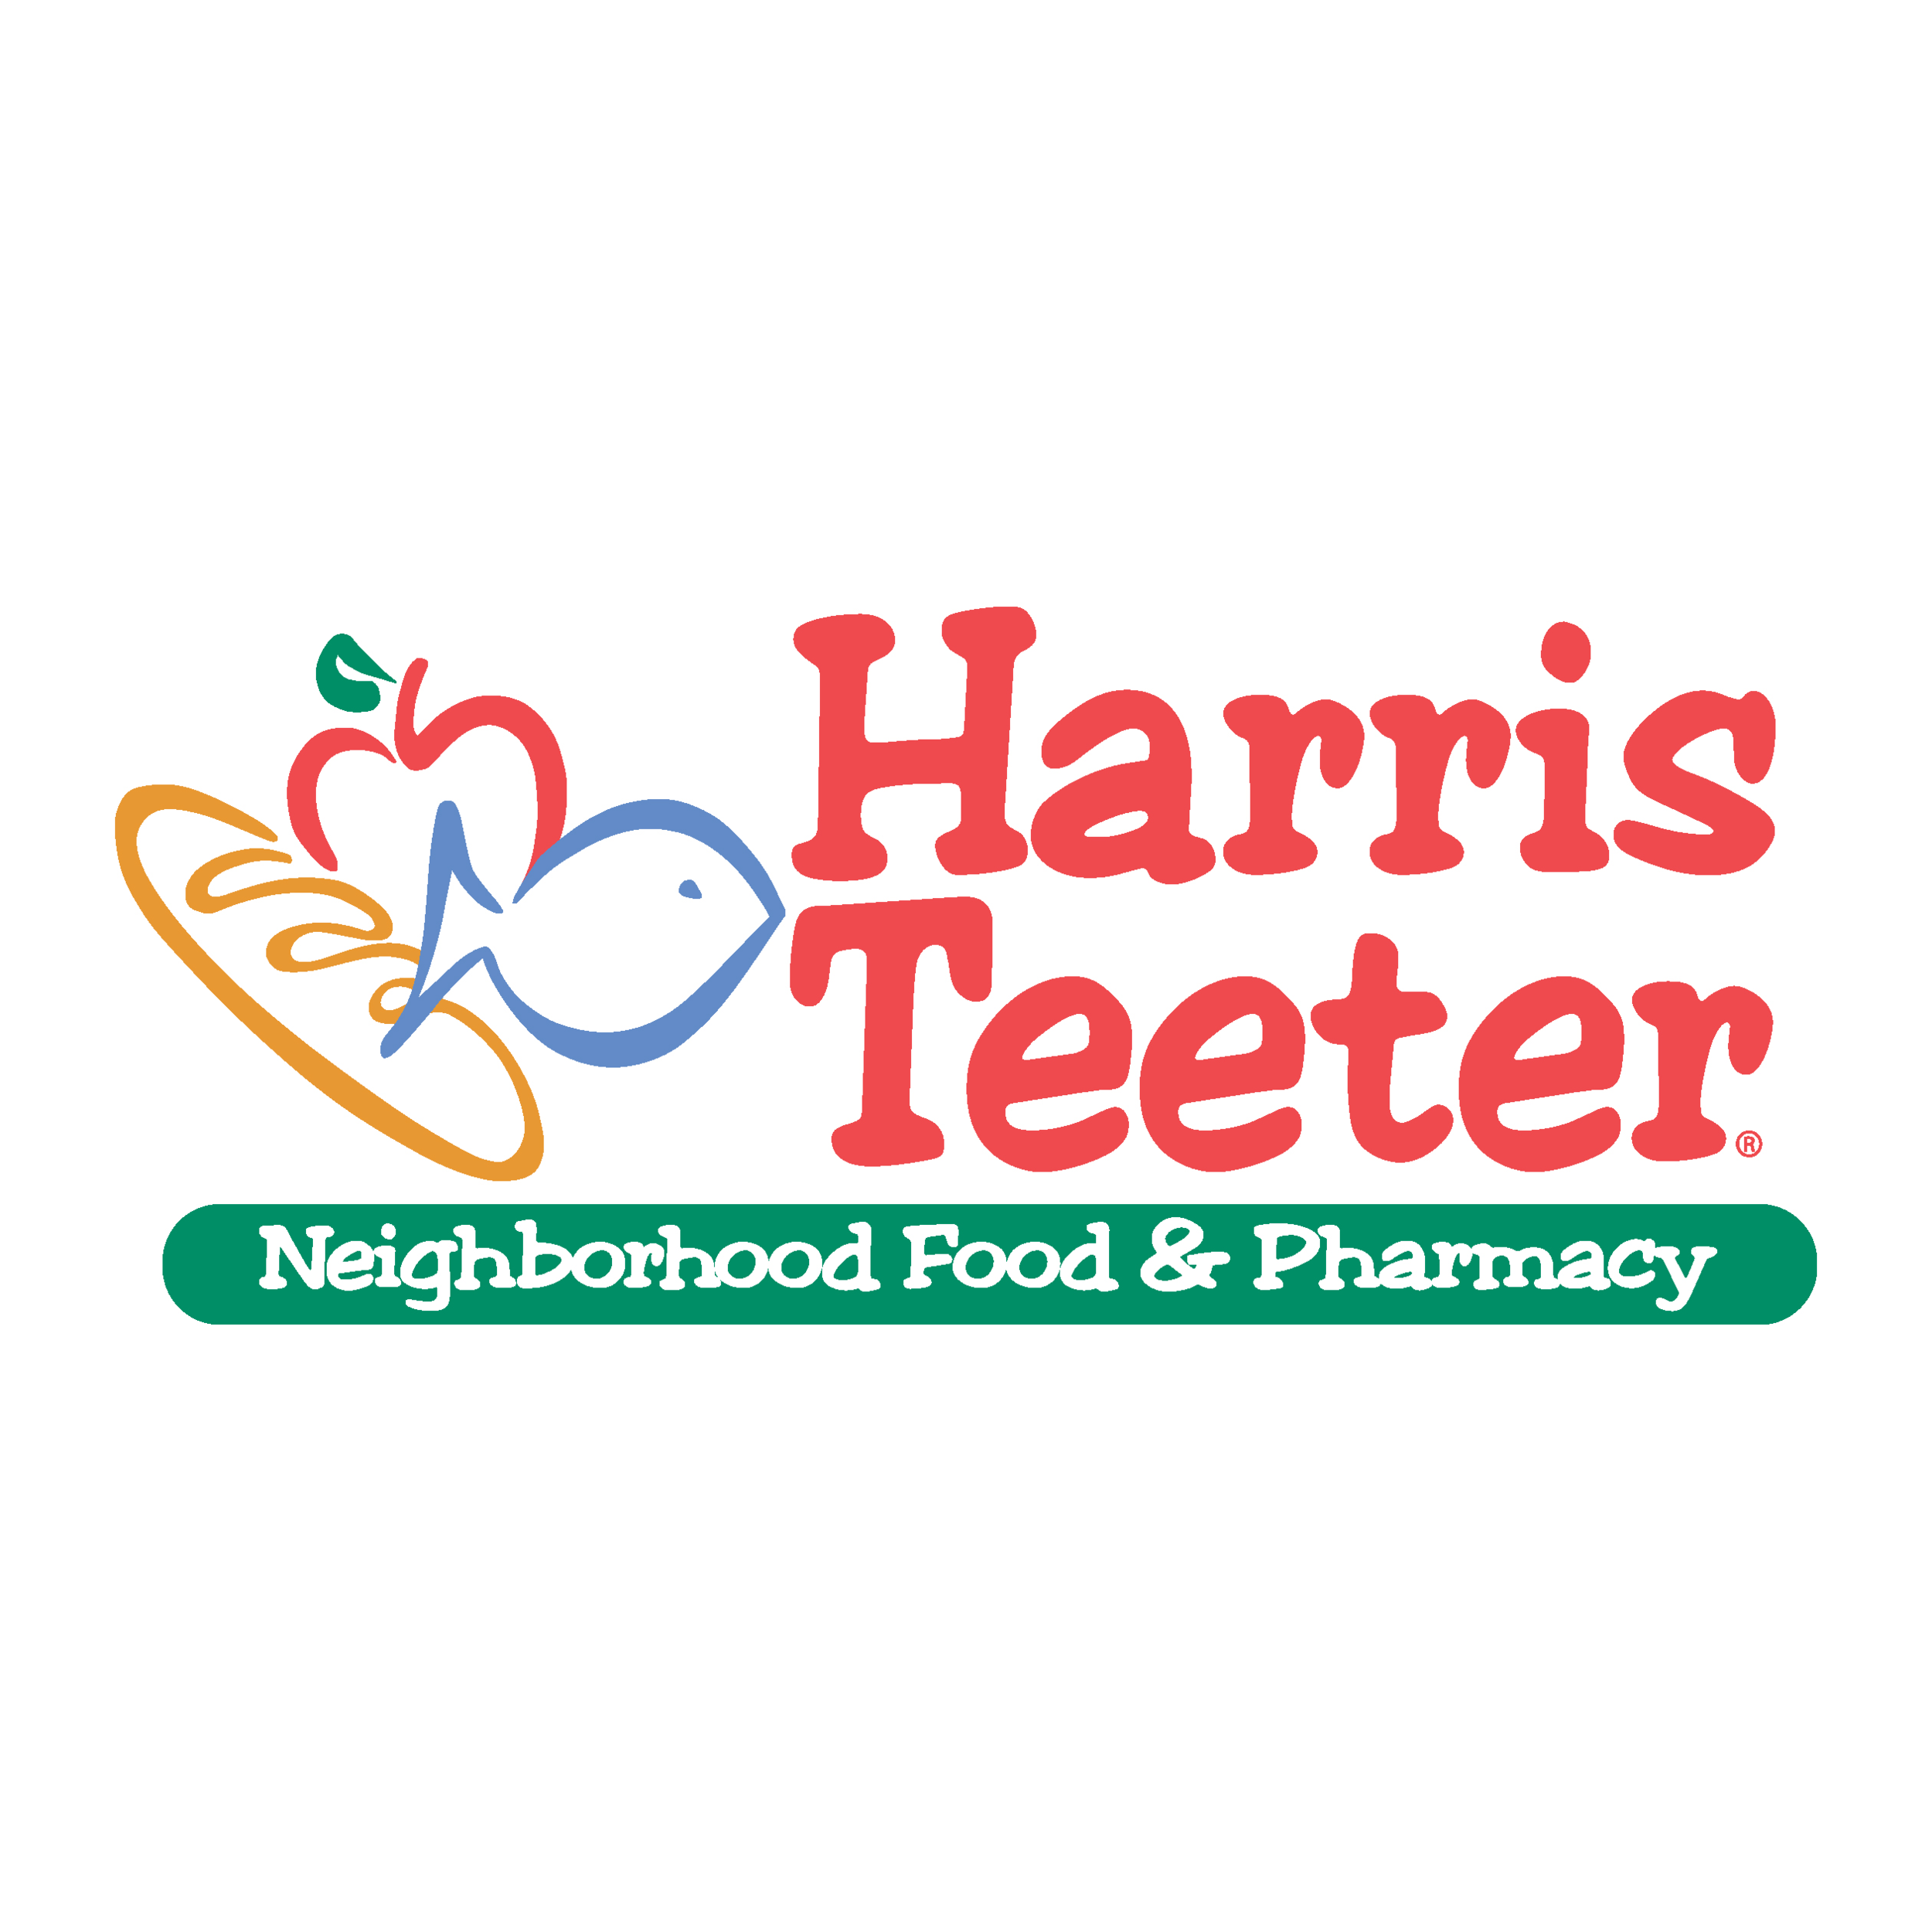 harris teeter website logo.png